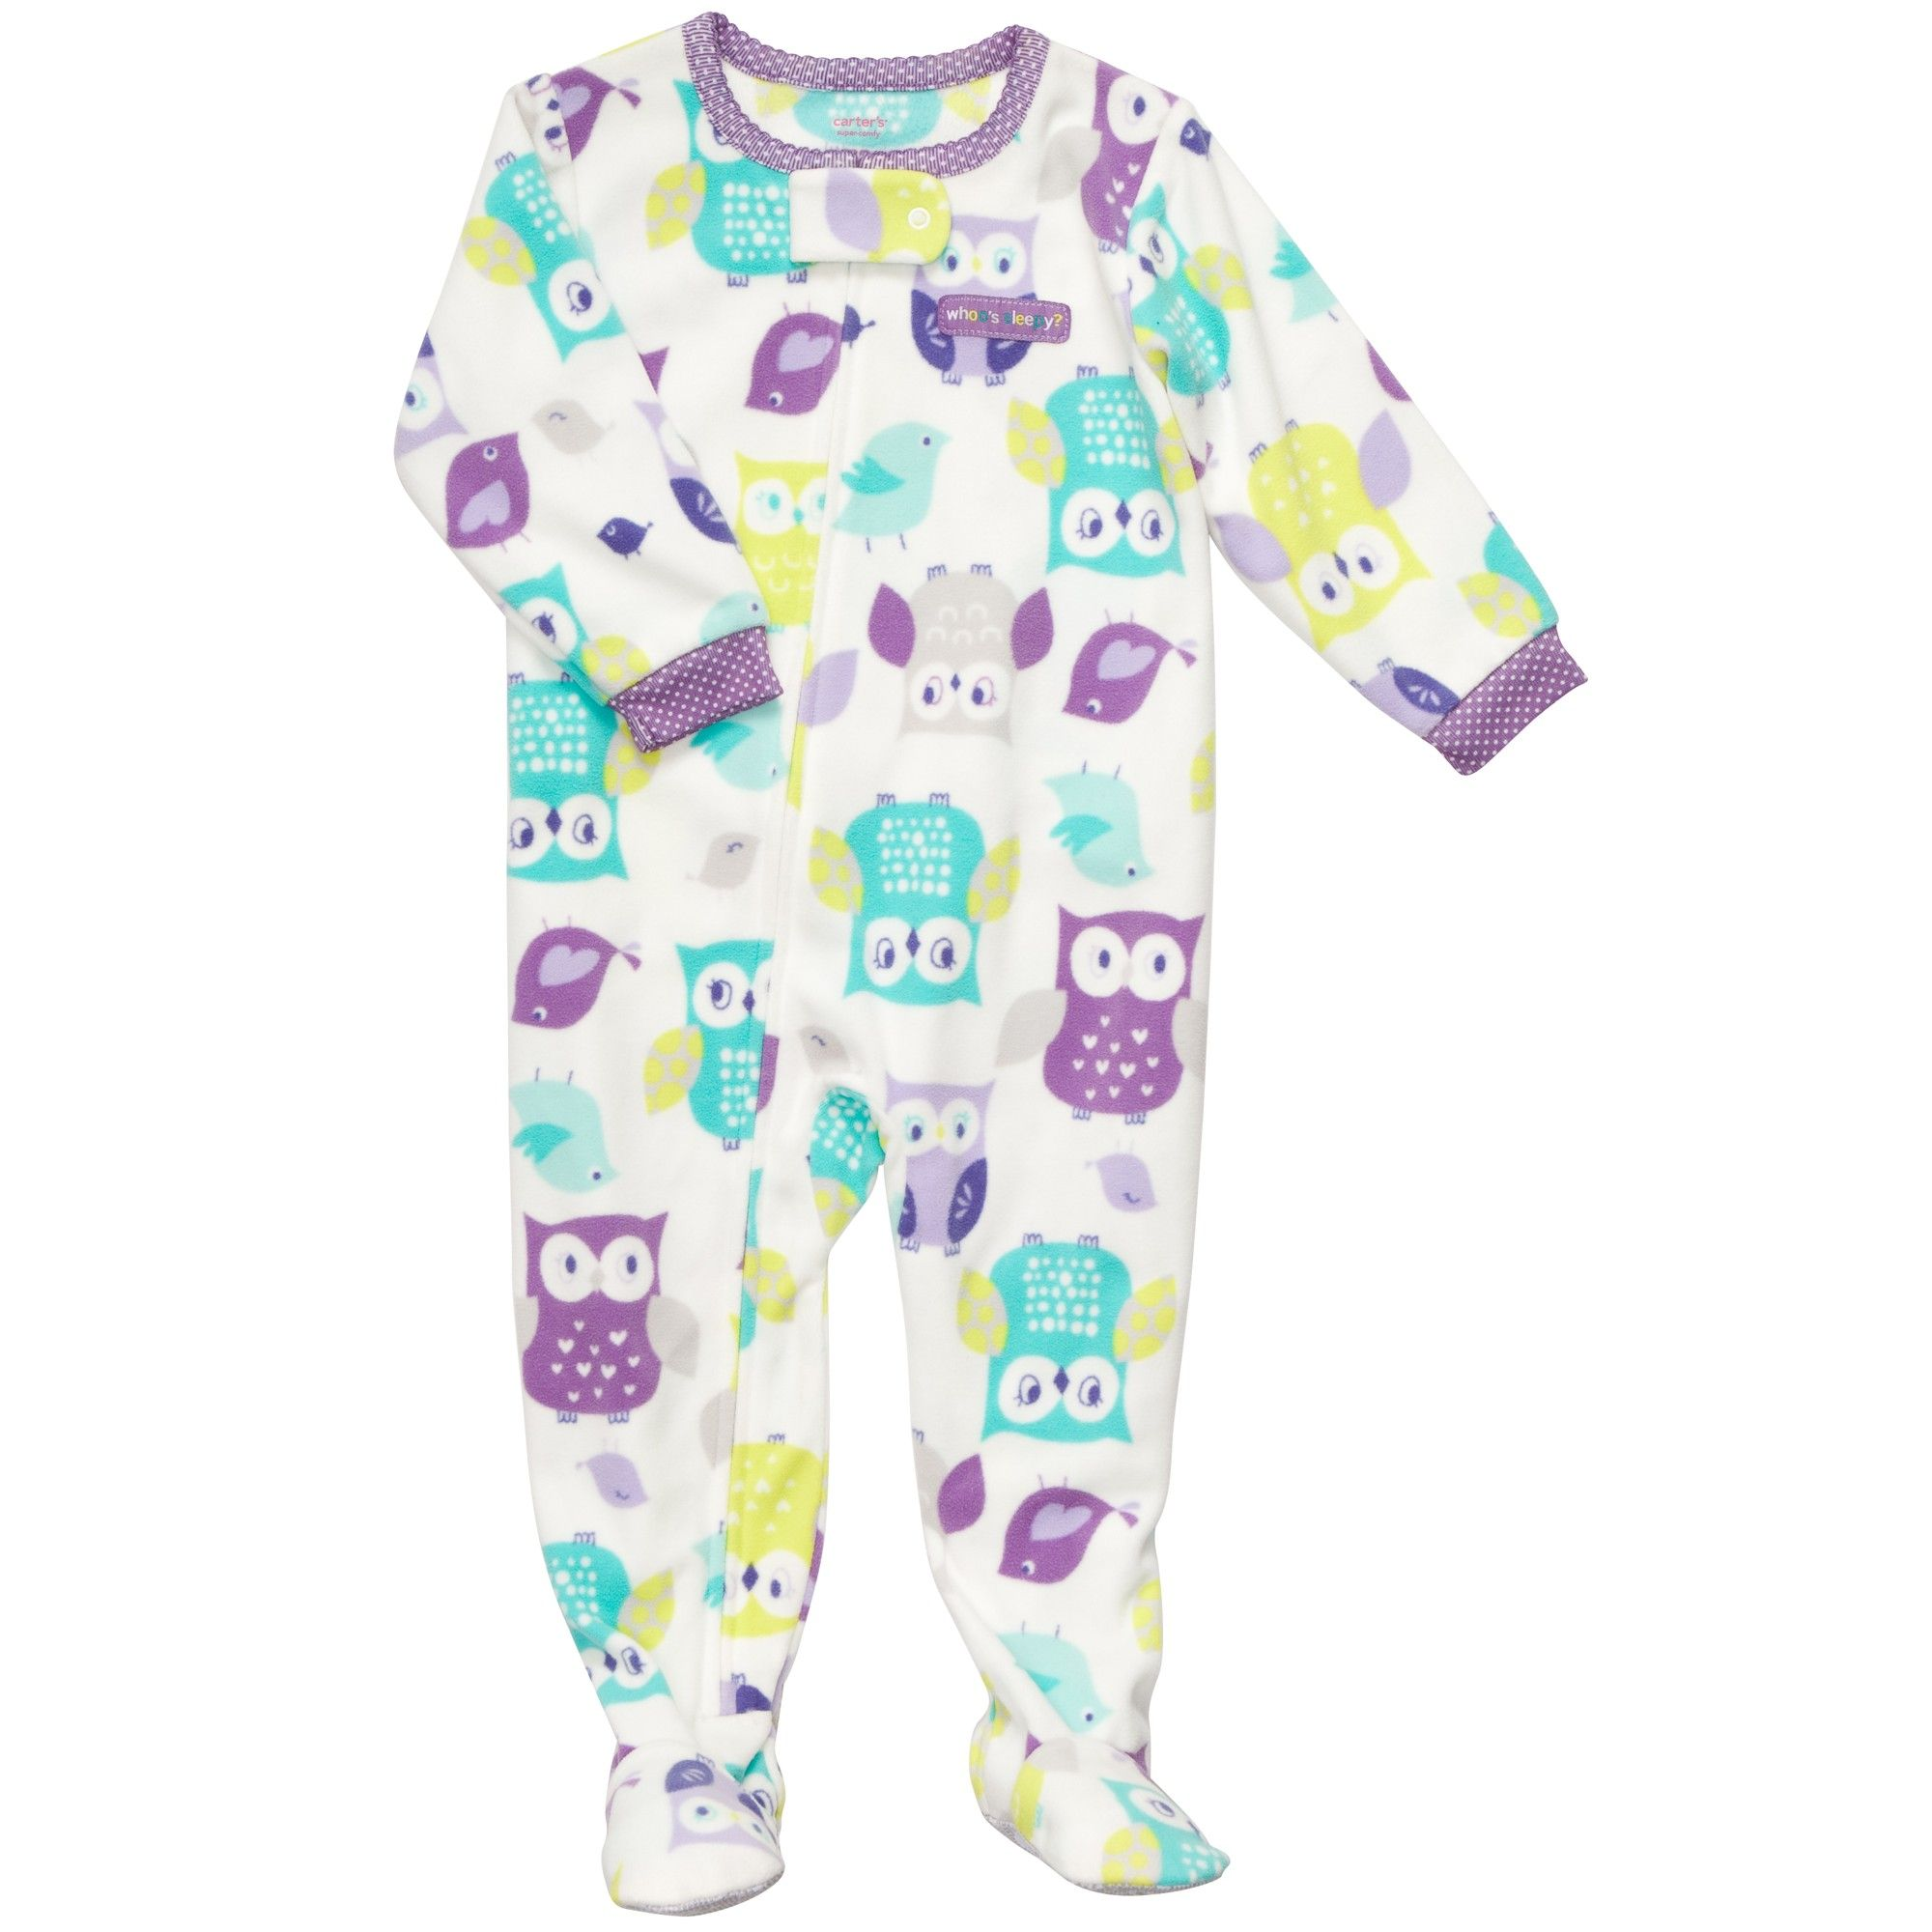 1 Piece Microfleece Pjs Baby Girl Up to off Sale